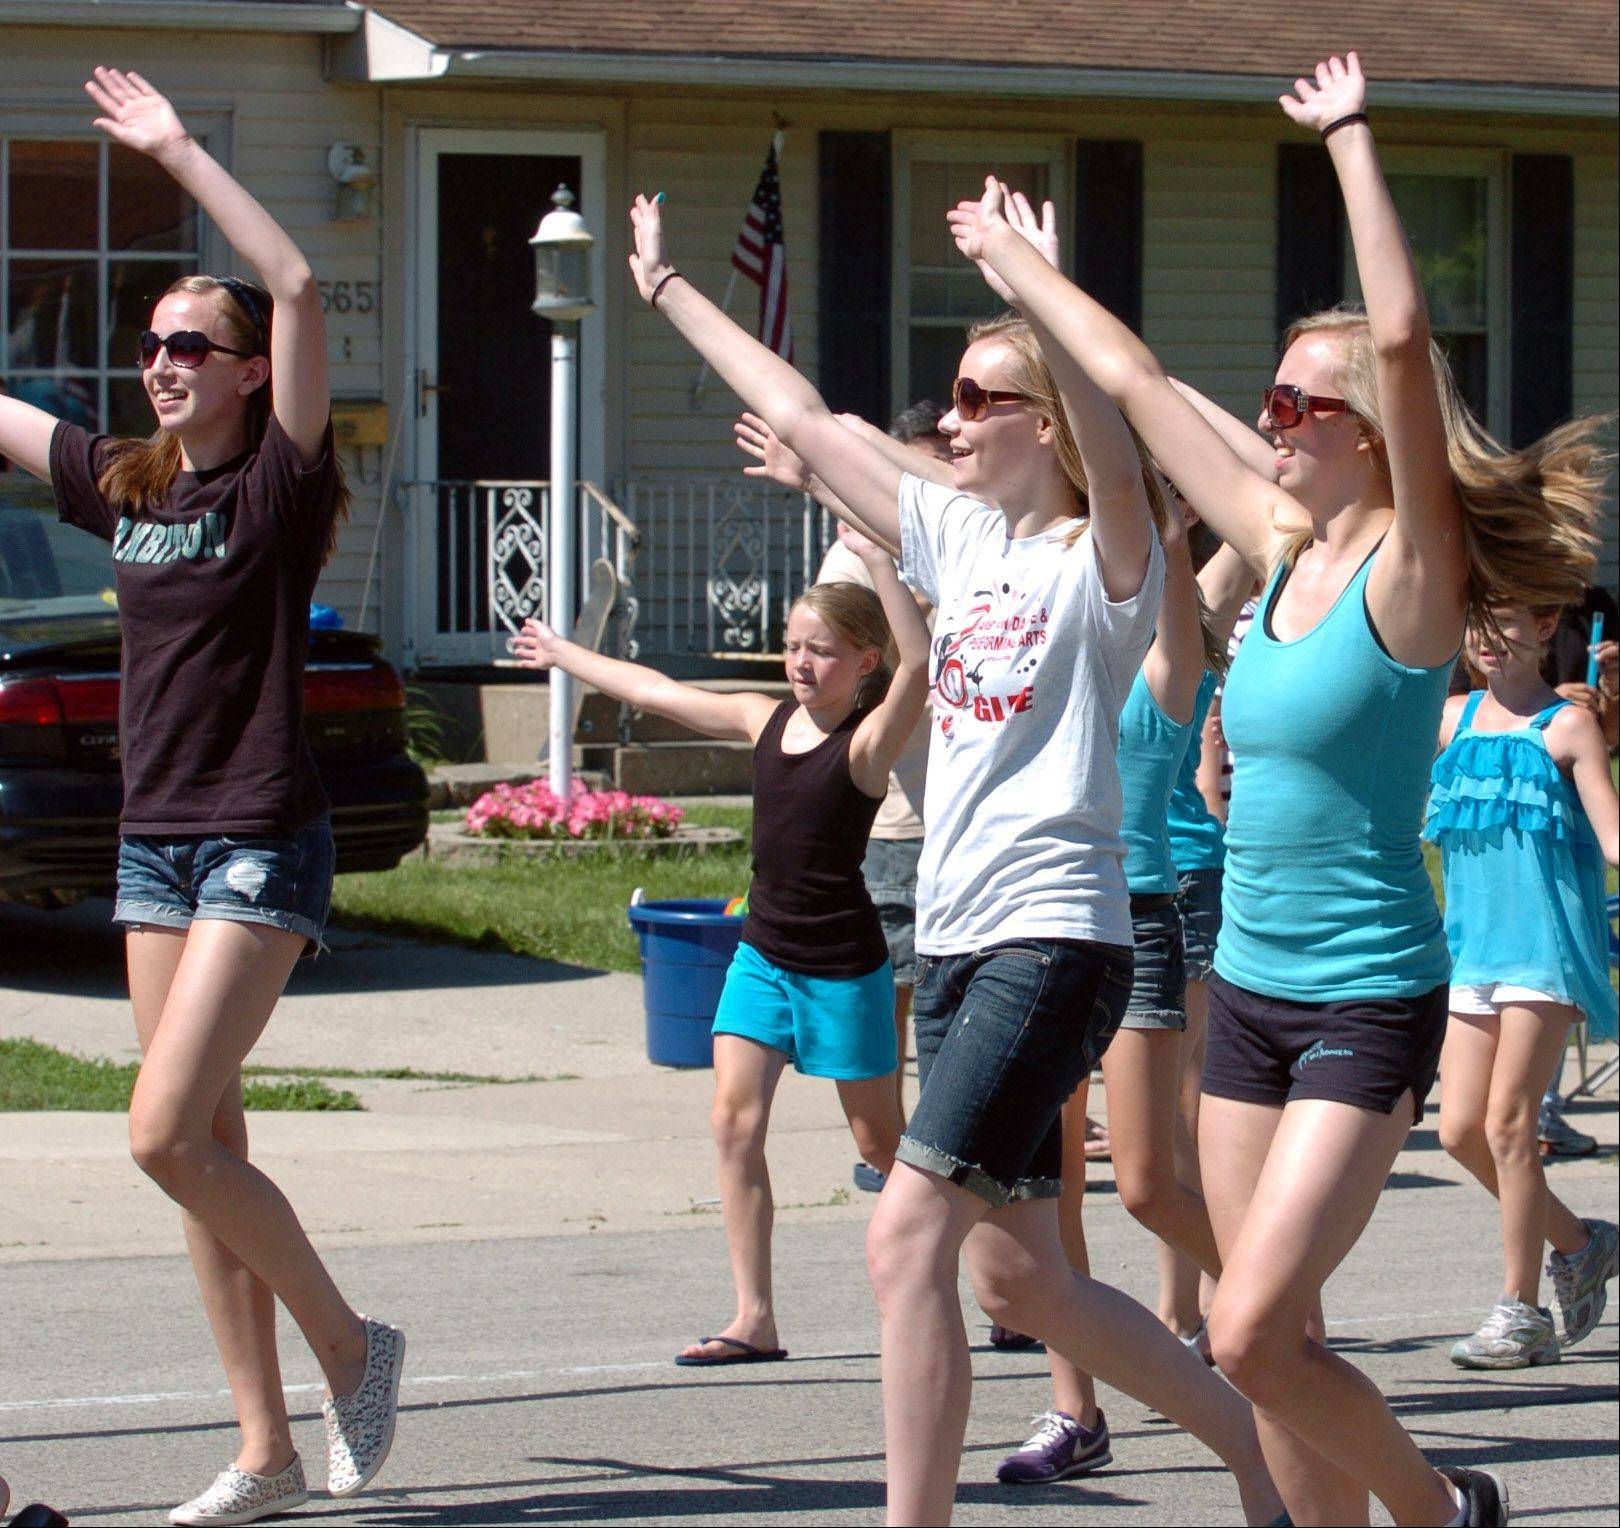 The Ambition Dance & Performing Arts of South Elgin, danced their way through the South Elgin Fourth of July Parade down Spring Street.